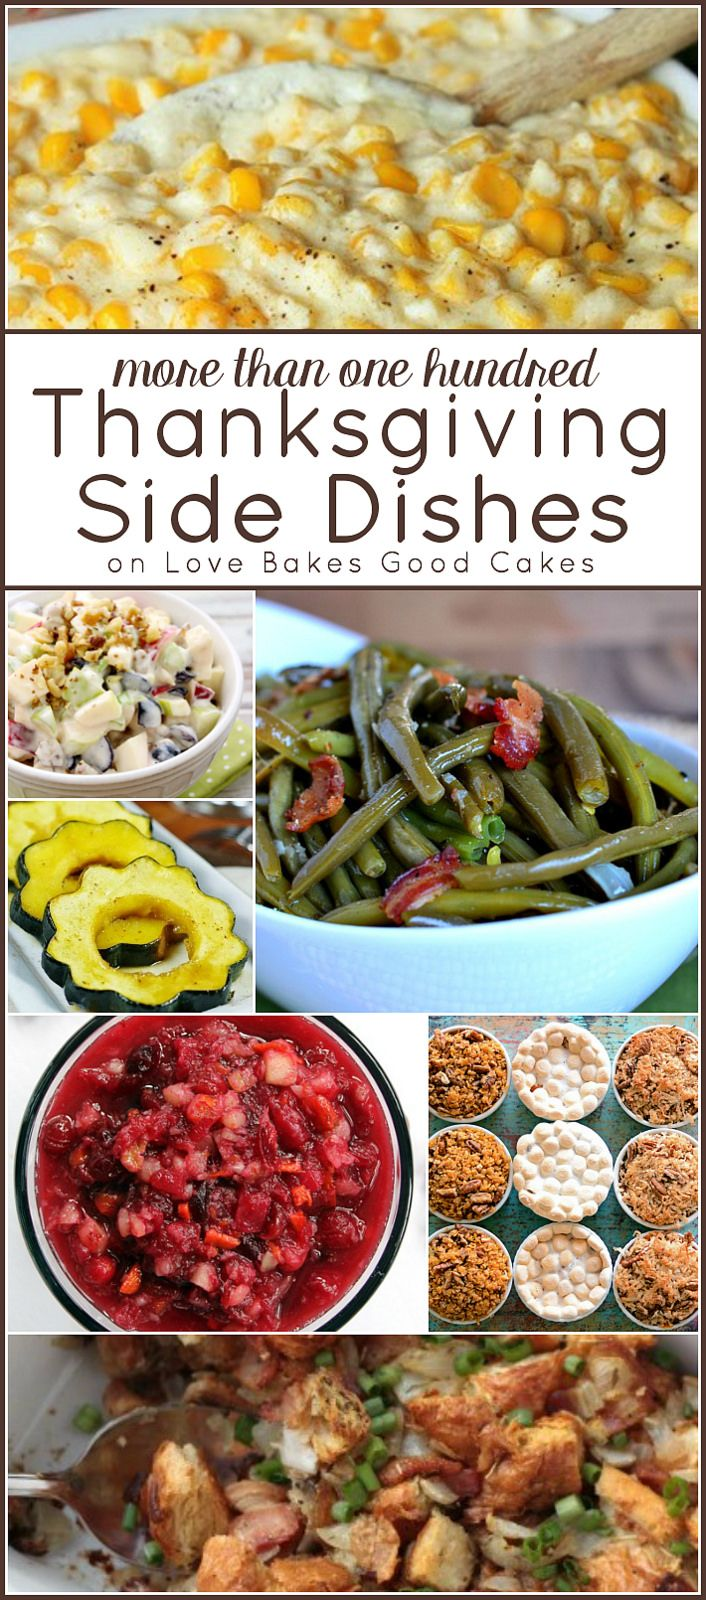 More than 100 Thanksgiving Side Dishes - There's something for everyone! | Flickr - Photo Sharing!